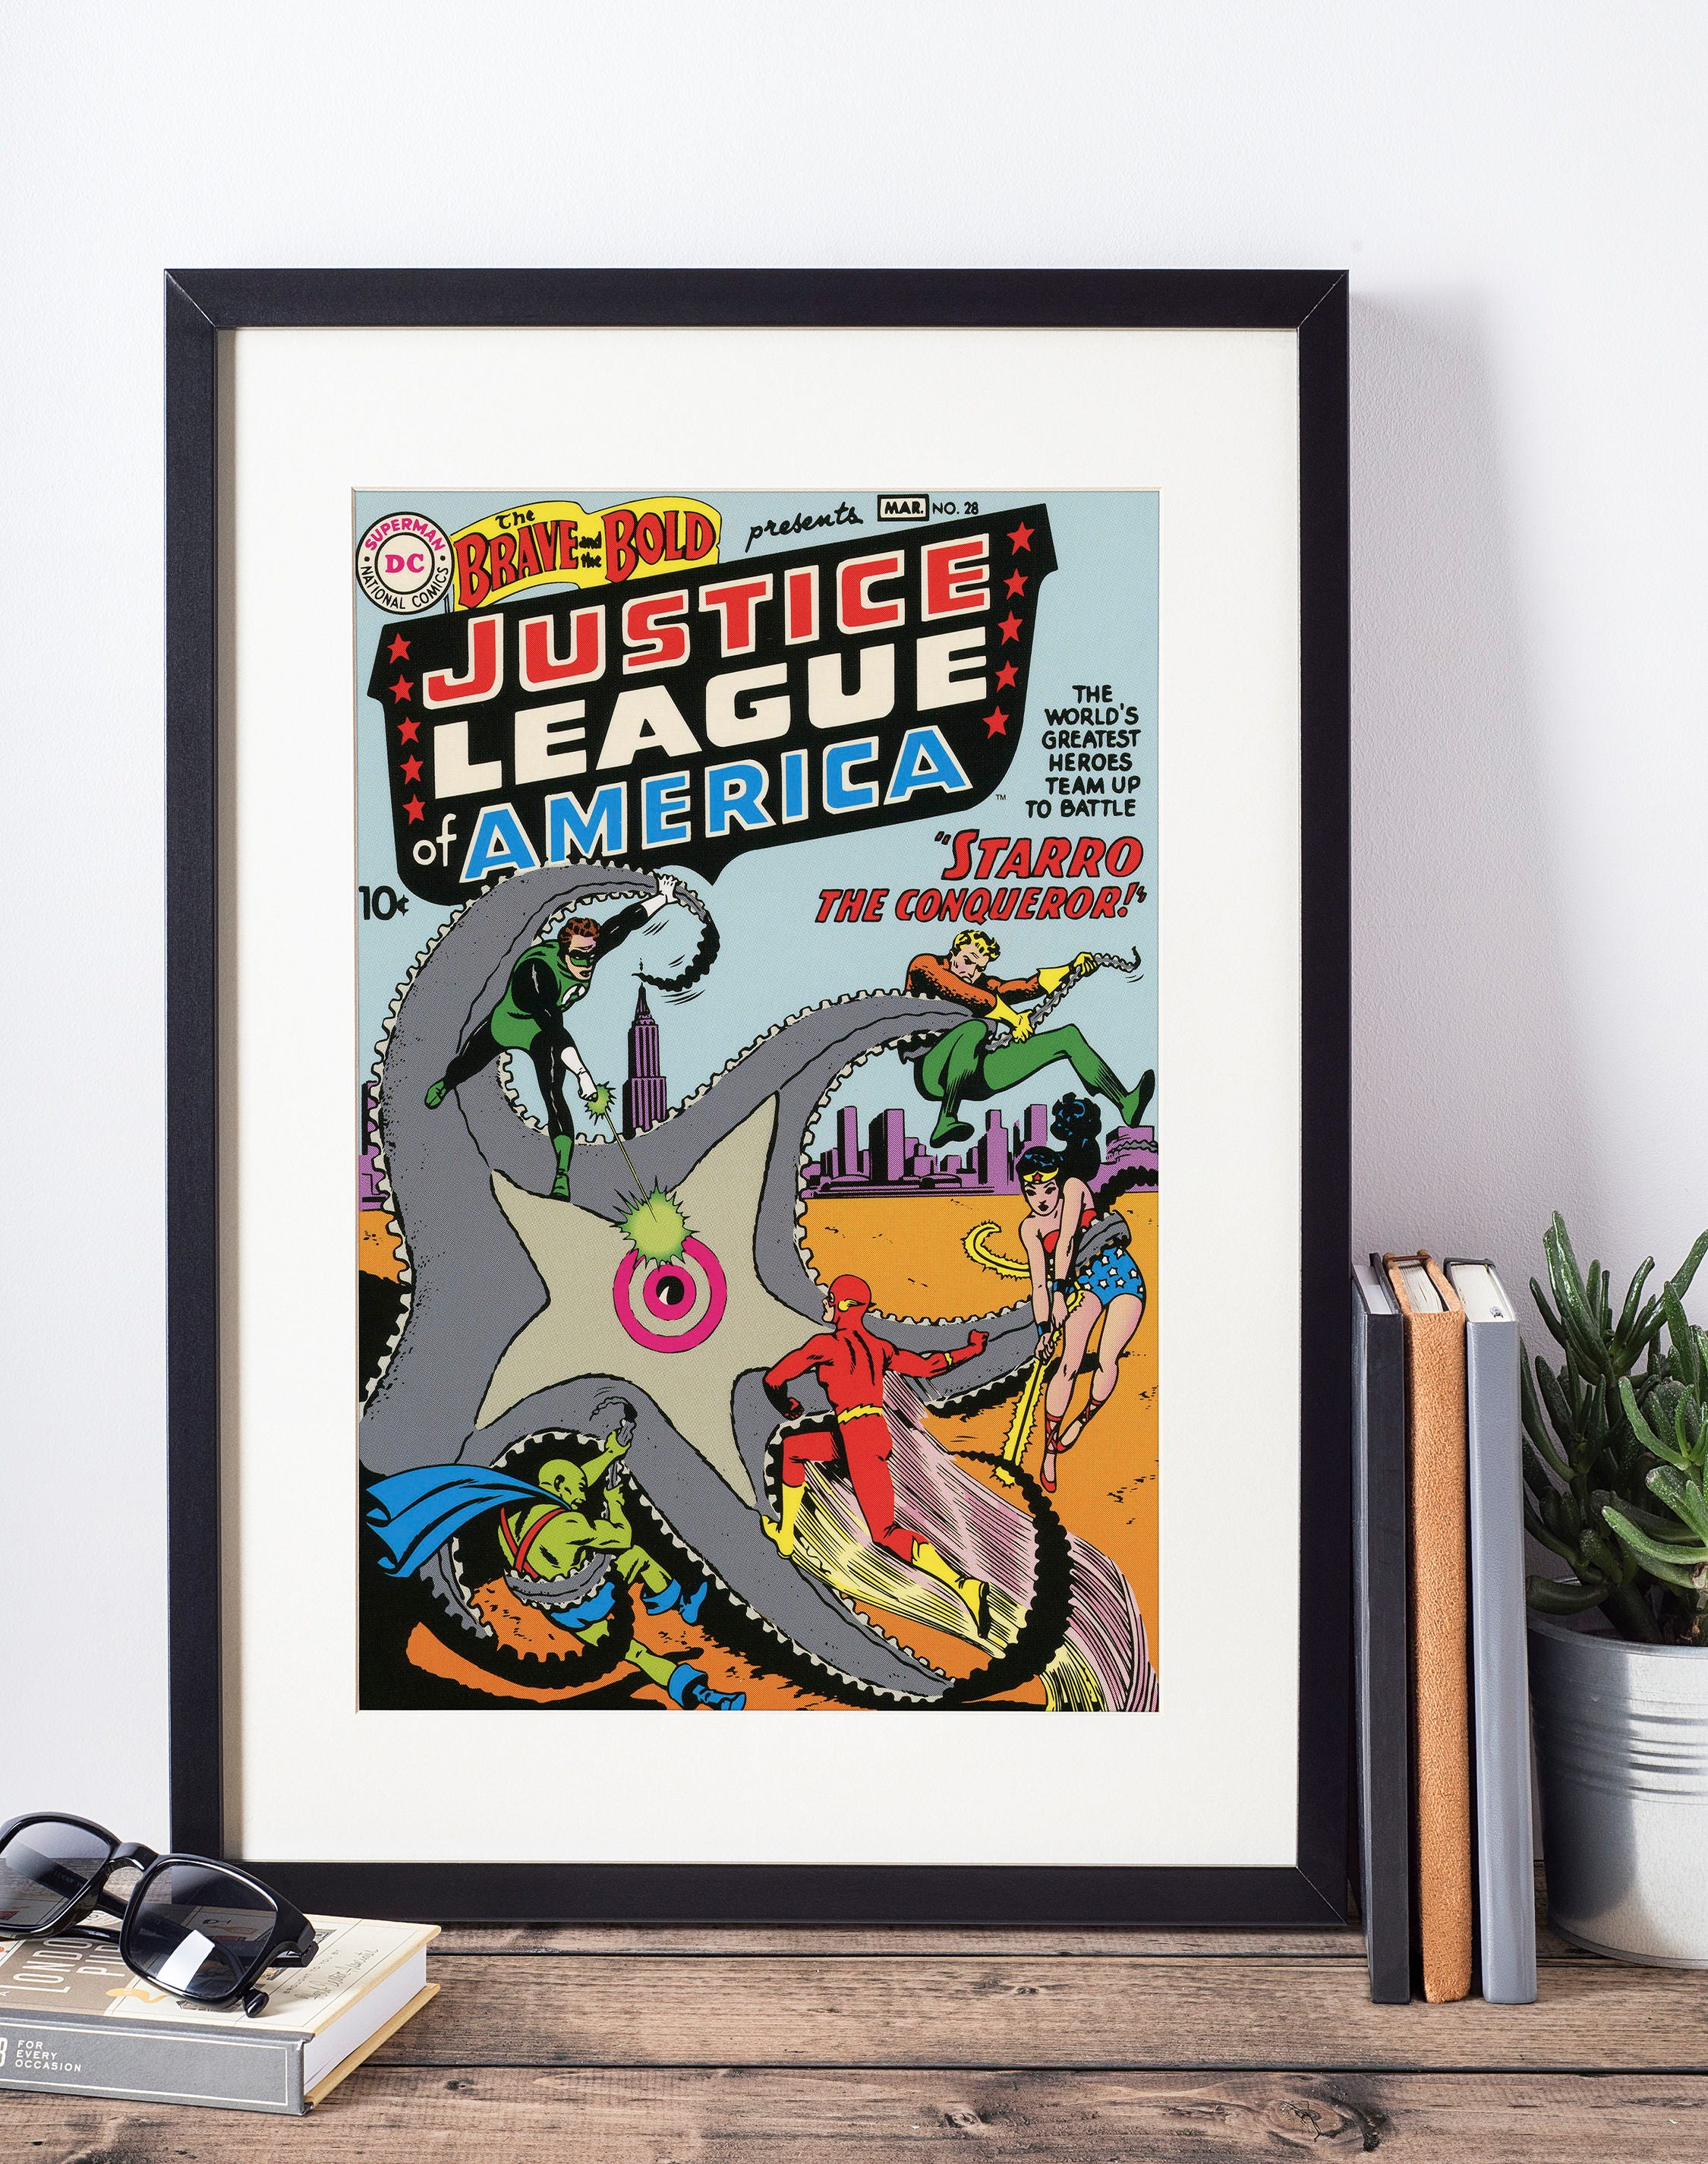 Wonder Woman Wall Art / Superhero Girl / Wonder Woman Poster / Justice League / DC Comics / Geeky Baby Gift / Wonder Woman Art / Nerdy Girl & Wonder Woman Wall Art / Superhero Girl / Wonder Woman Poster ...